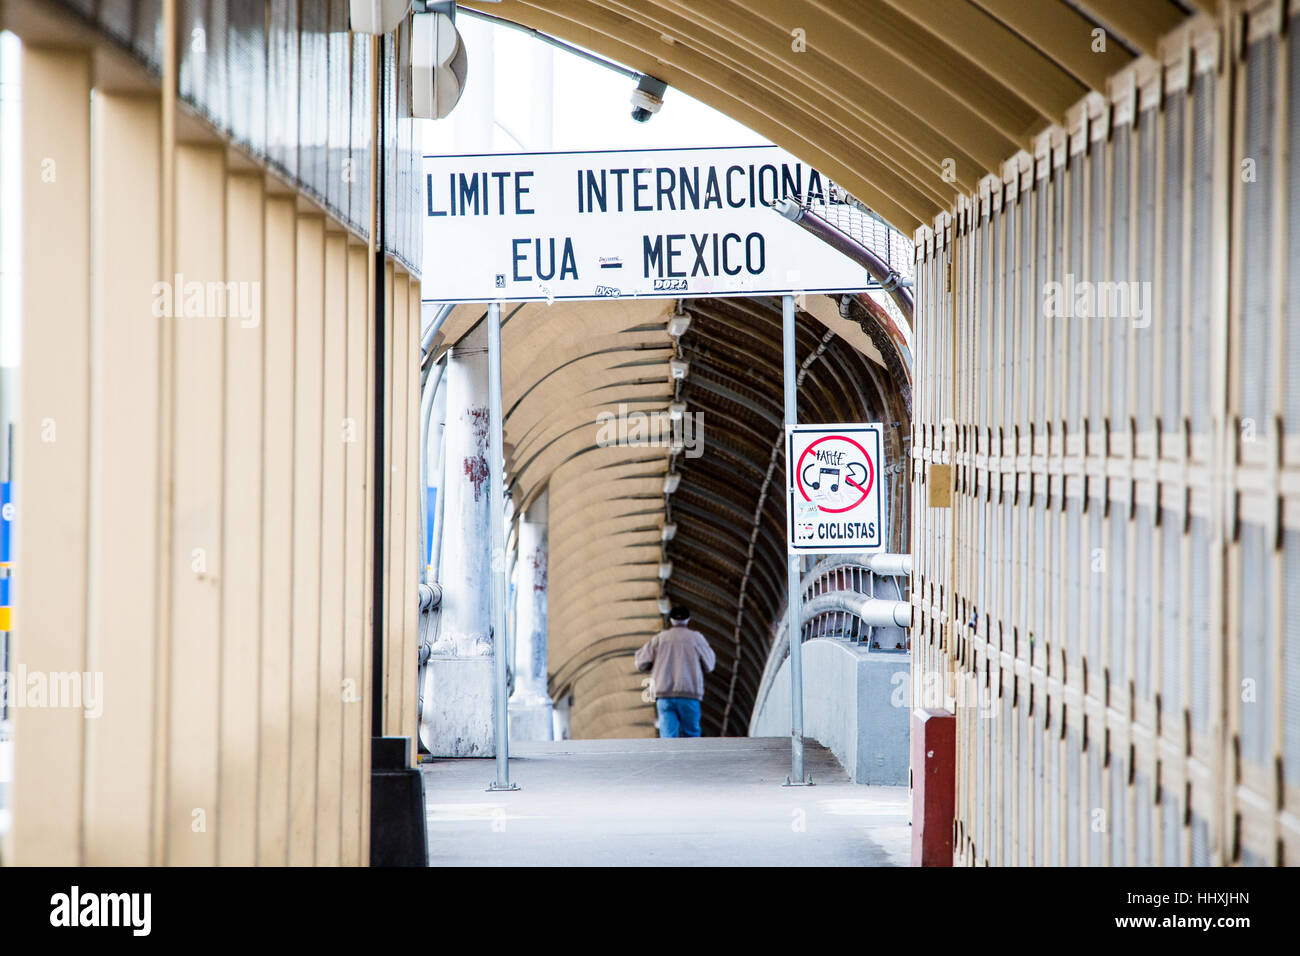 Juarez, Mexico and El Paso USA border - Stock Image